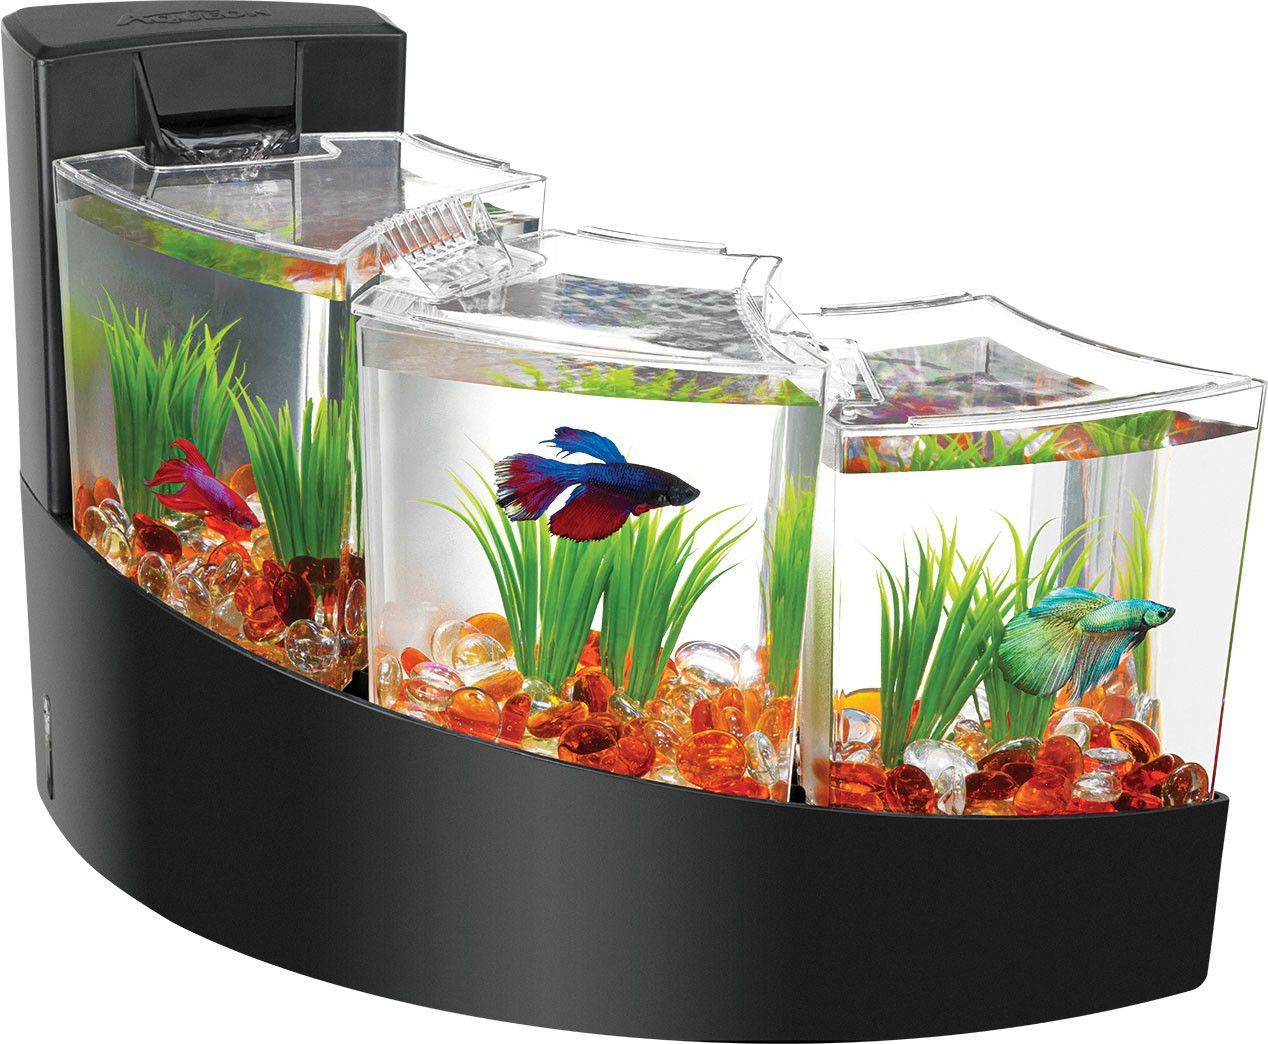 Aqueon betta falls kit bettas pinterest betta for Aqueon fish tank